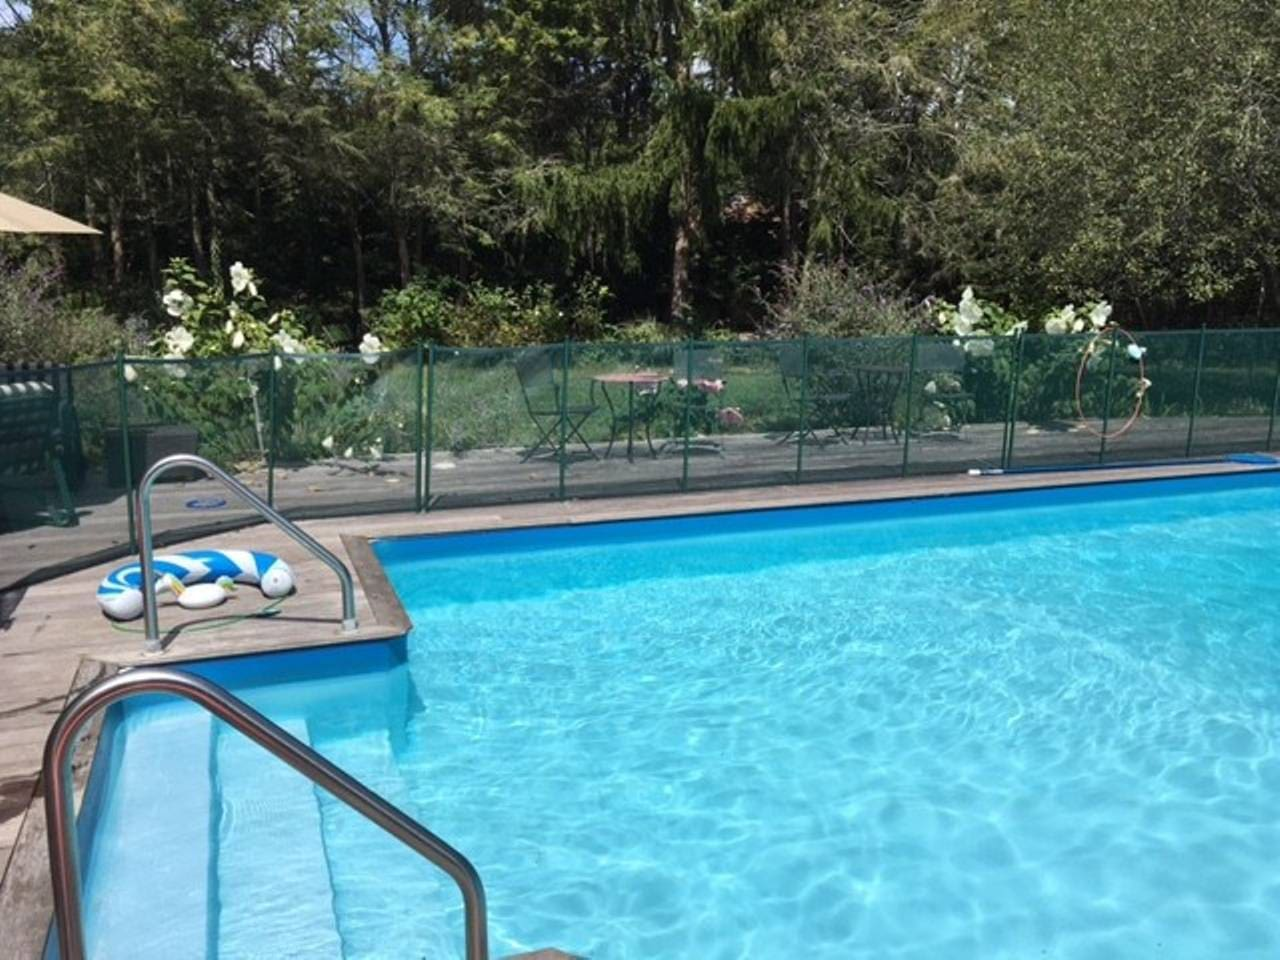 Private 5 bedroom home w/ pool and yard